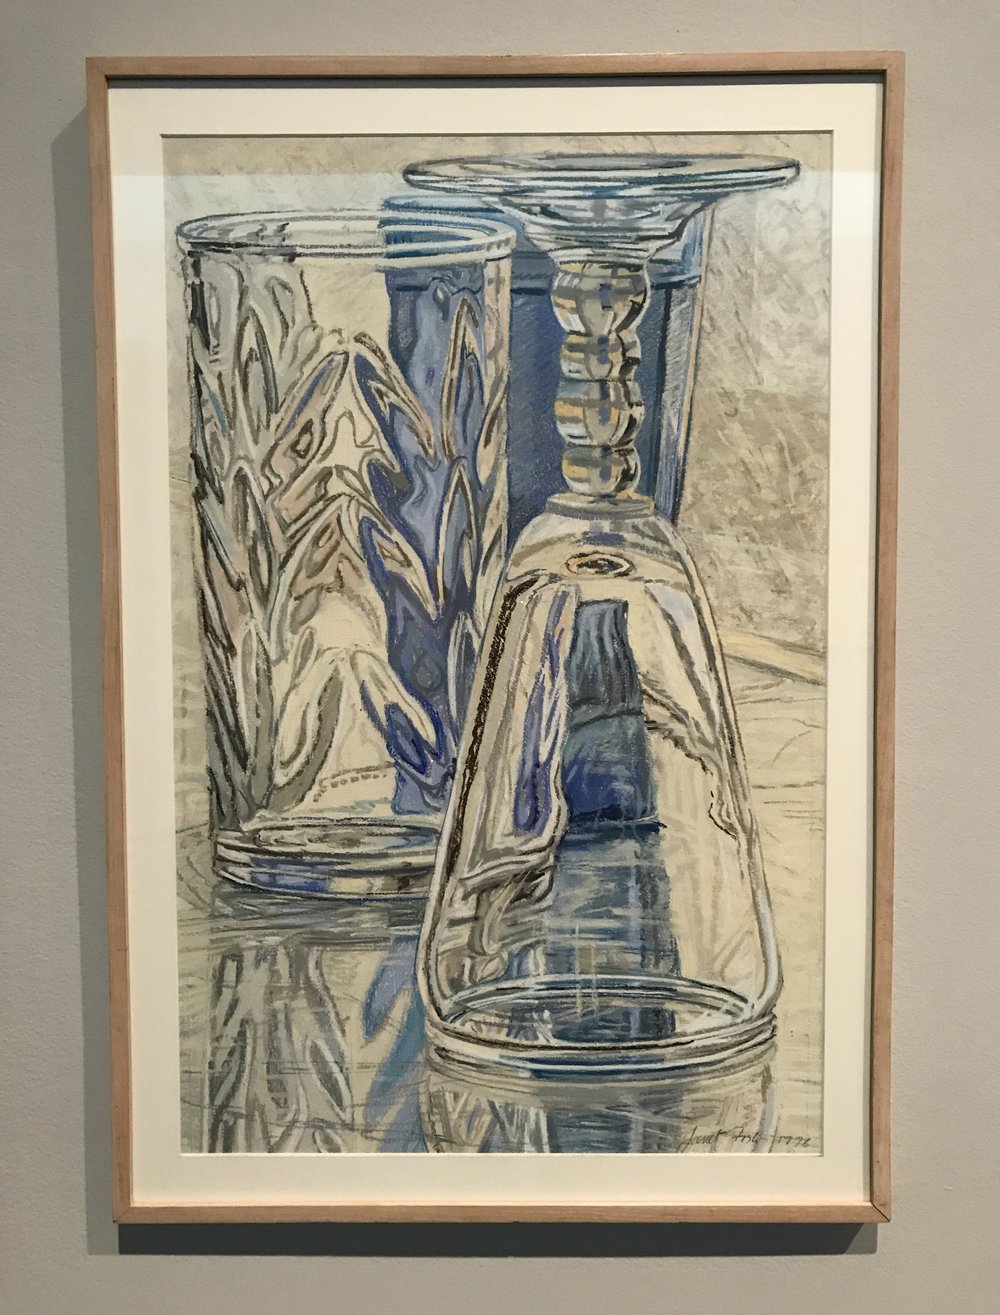 Janet Fish (American, b. 1938), Blue Glass, 1976, pastel on paper, Museum Purchase Funded by the Corpus Christi Caller-Times, the National Endowment for the Arts, and Mestina Oil & Gas Company